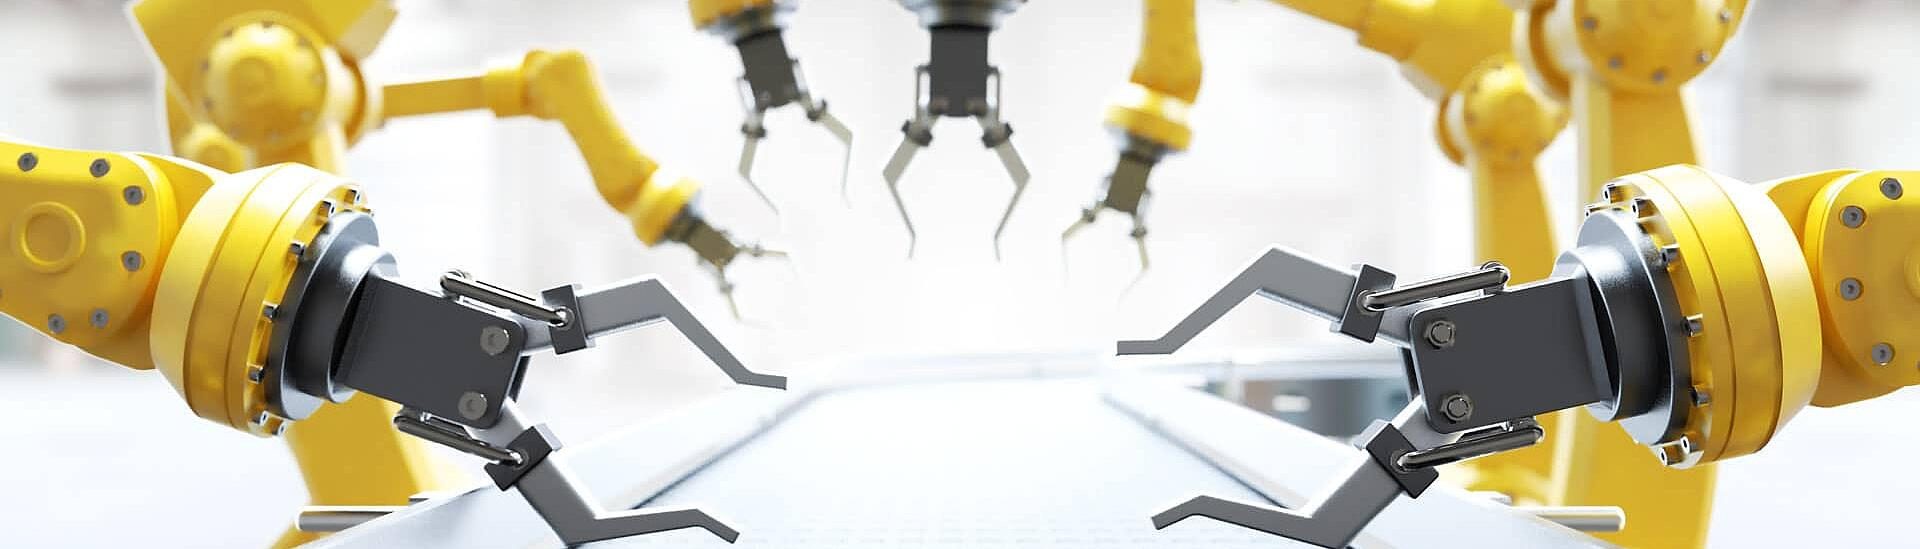 Automation - industry roboter uses KTR components